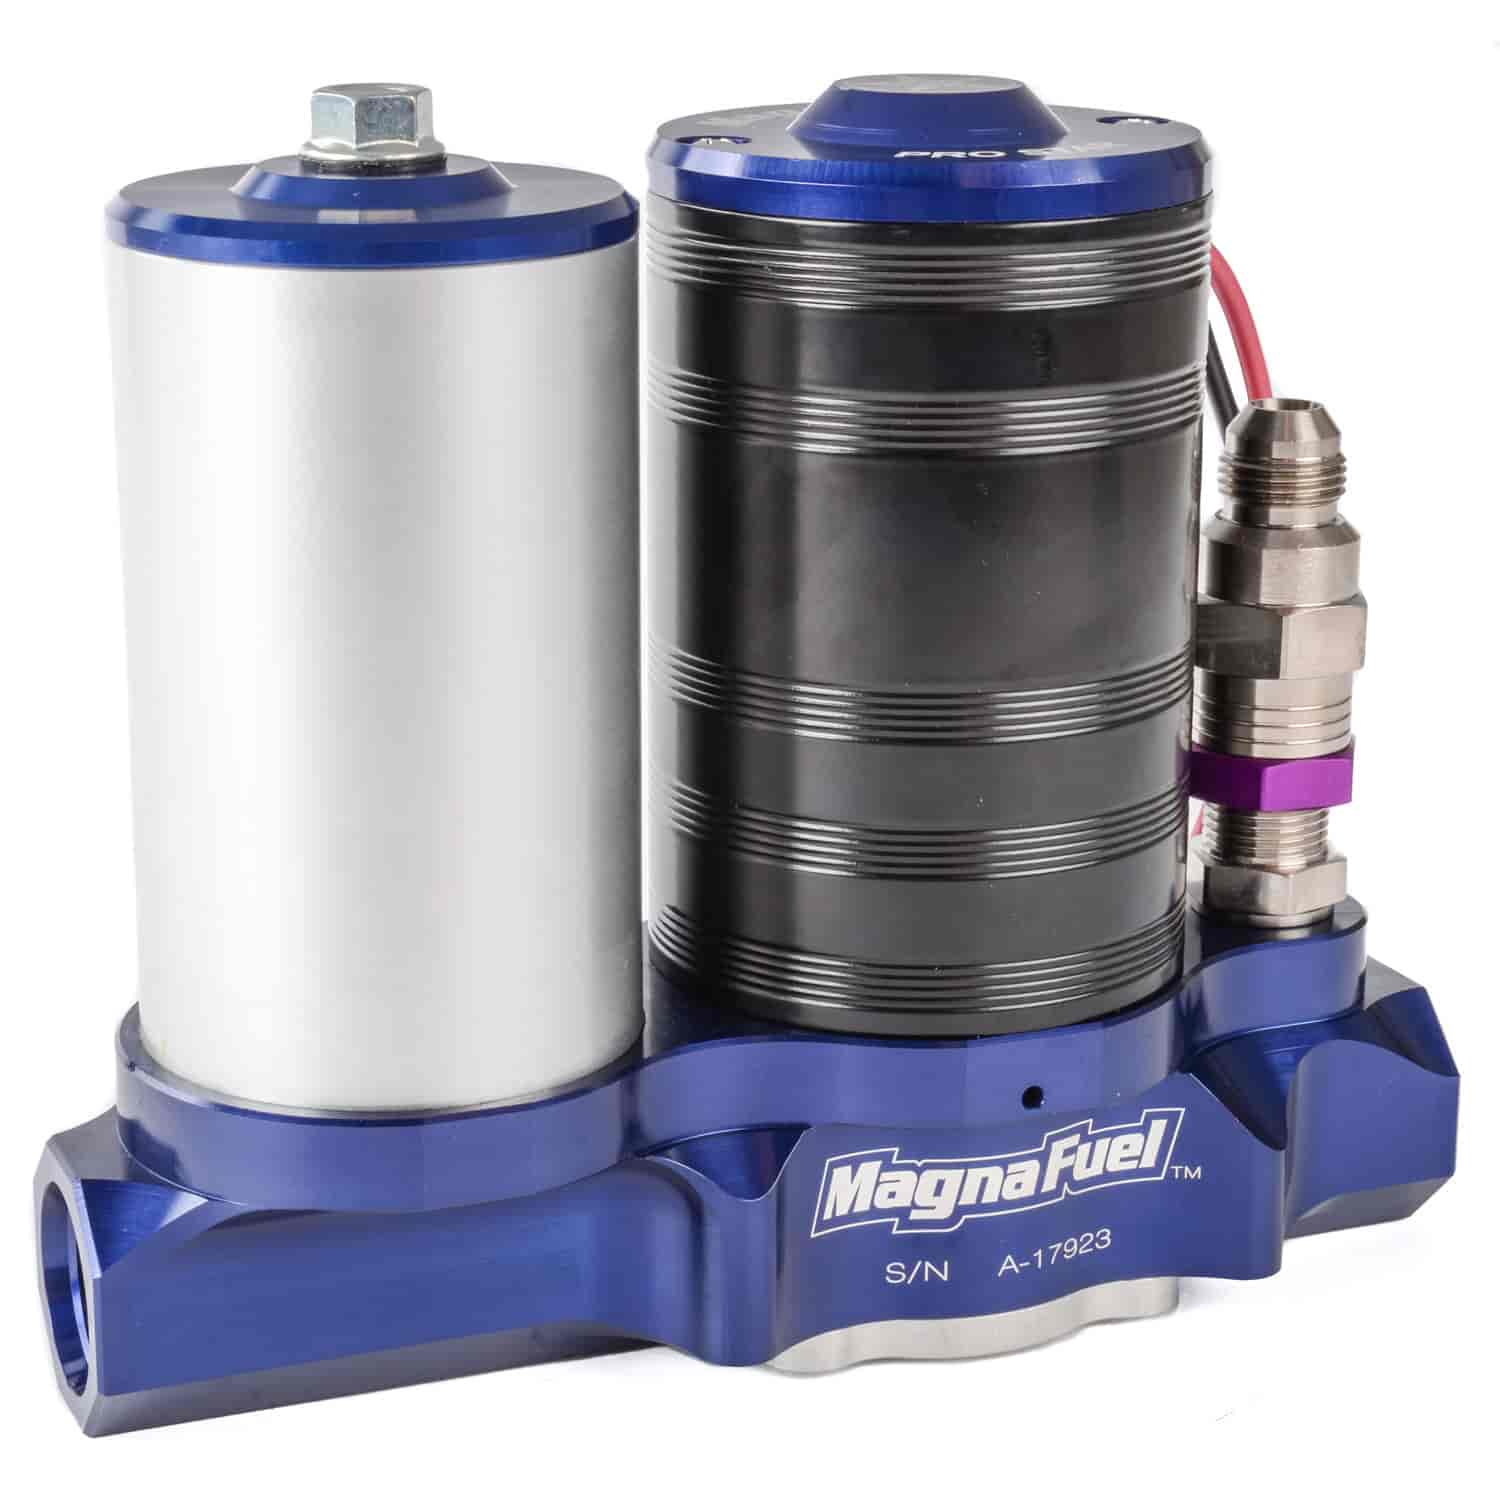 MagnaFuel MP-4450 - MagnaFuel ProStar 500 Fuel Pumps